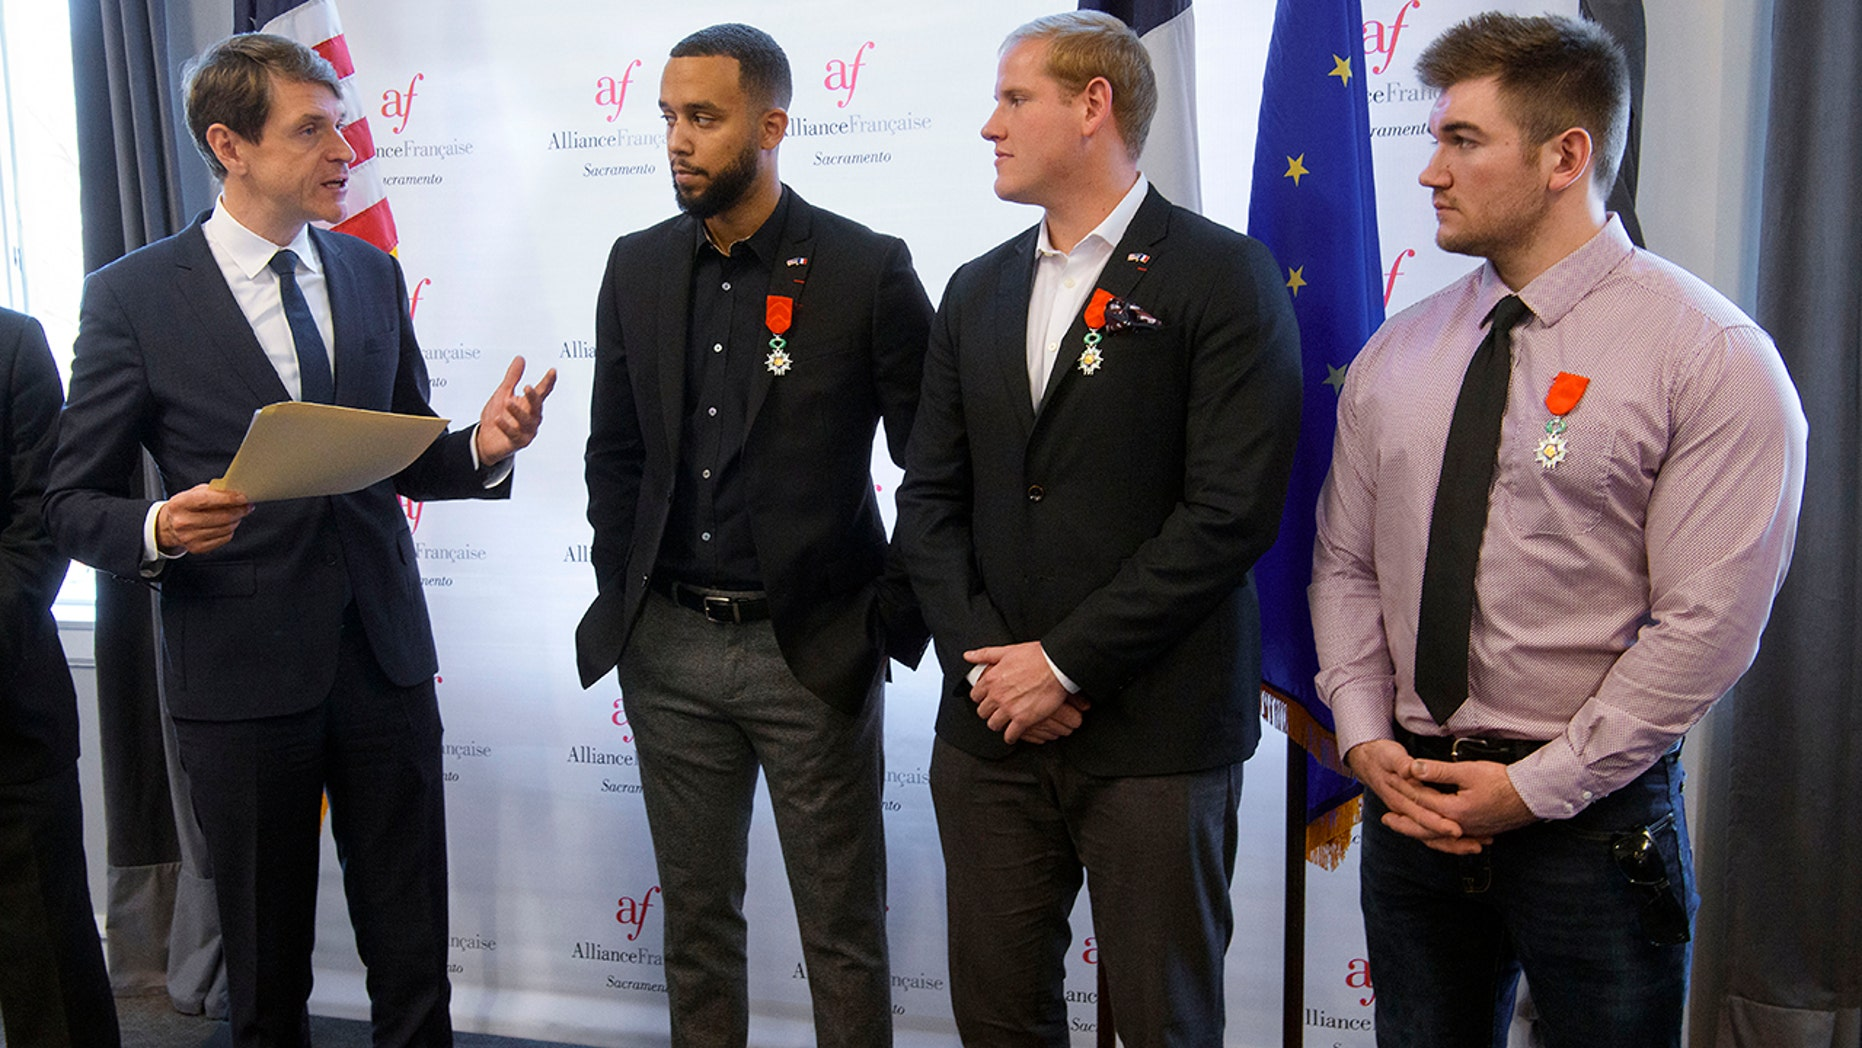 Paris train attack heroes awarded French citizenship | Fox News